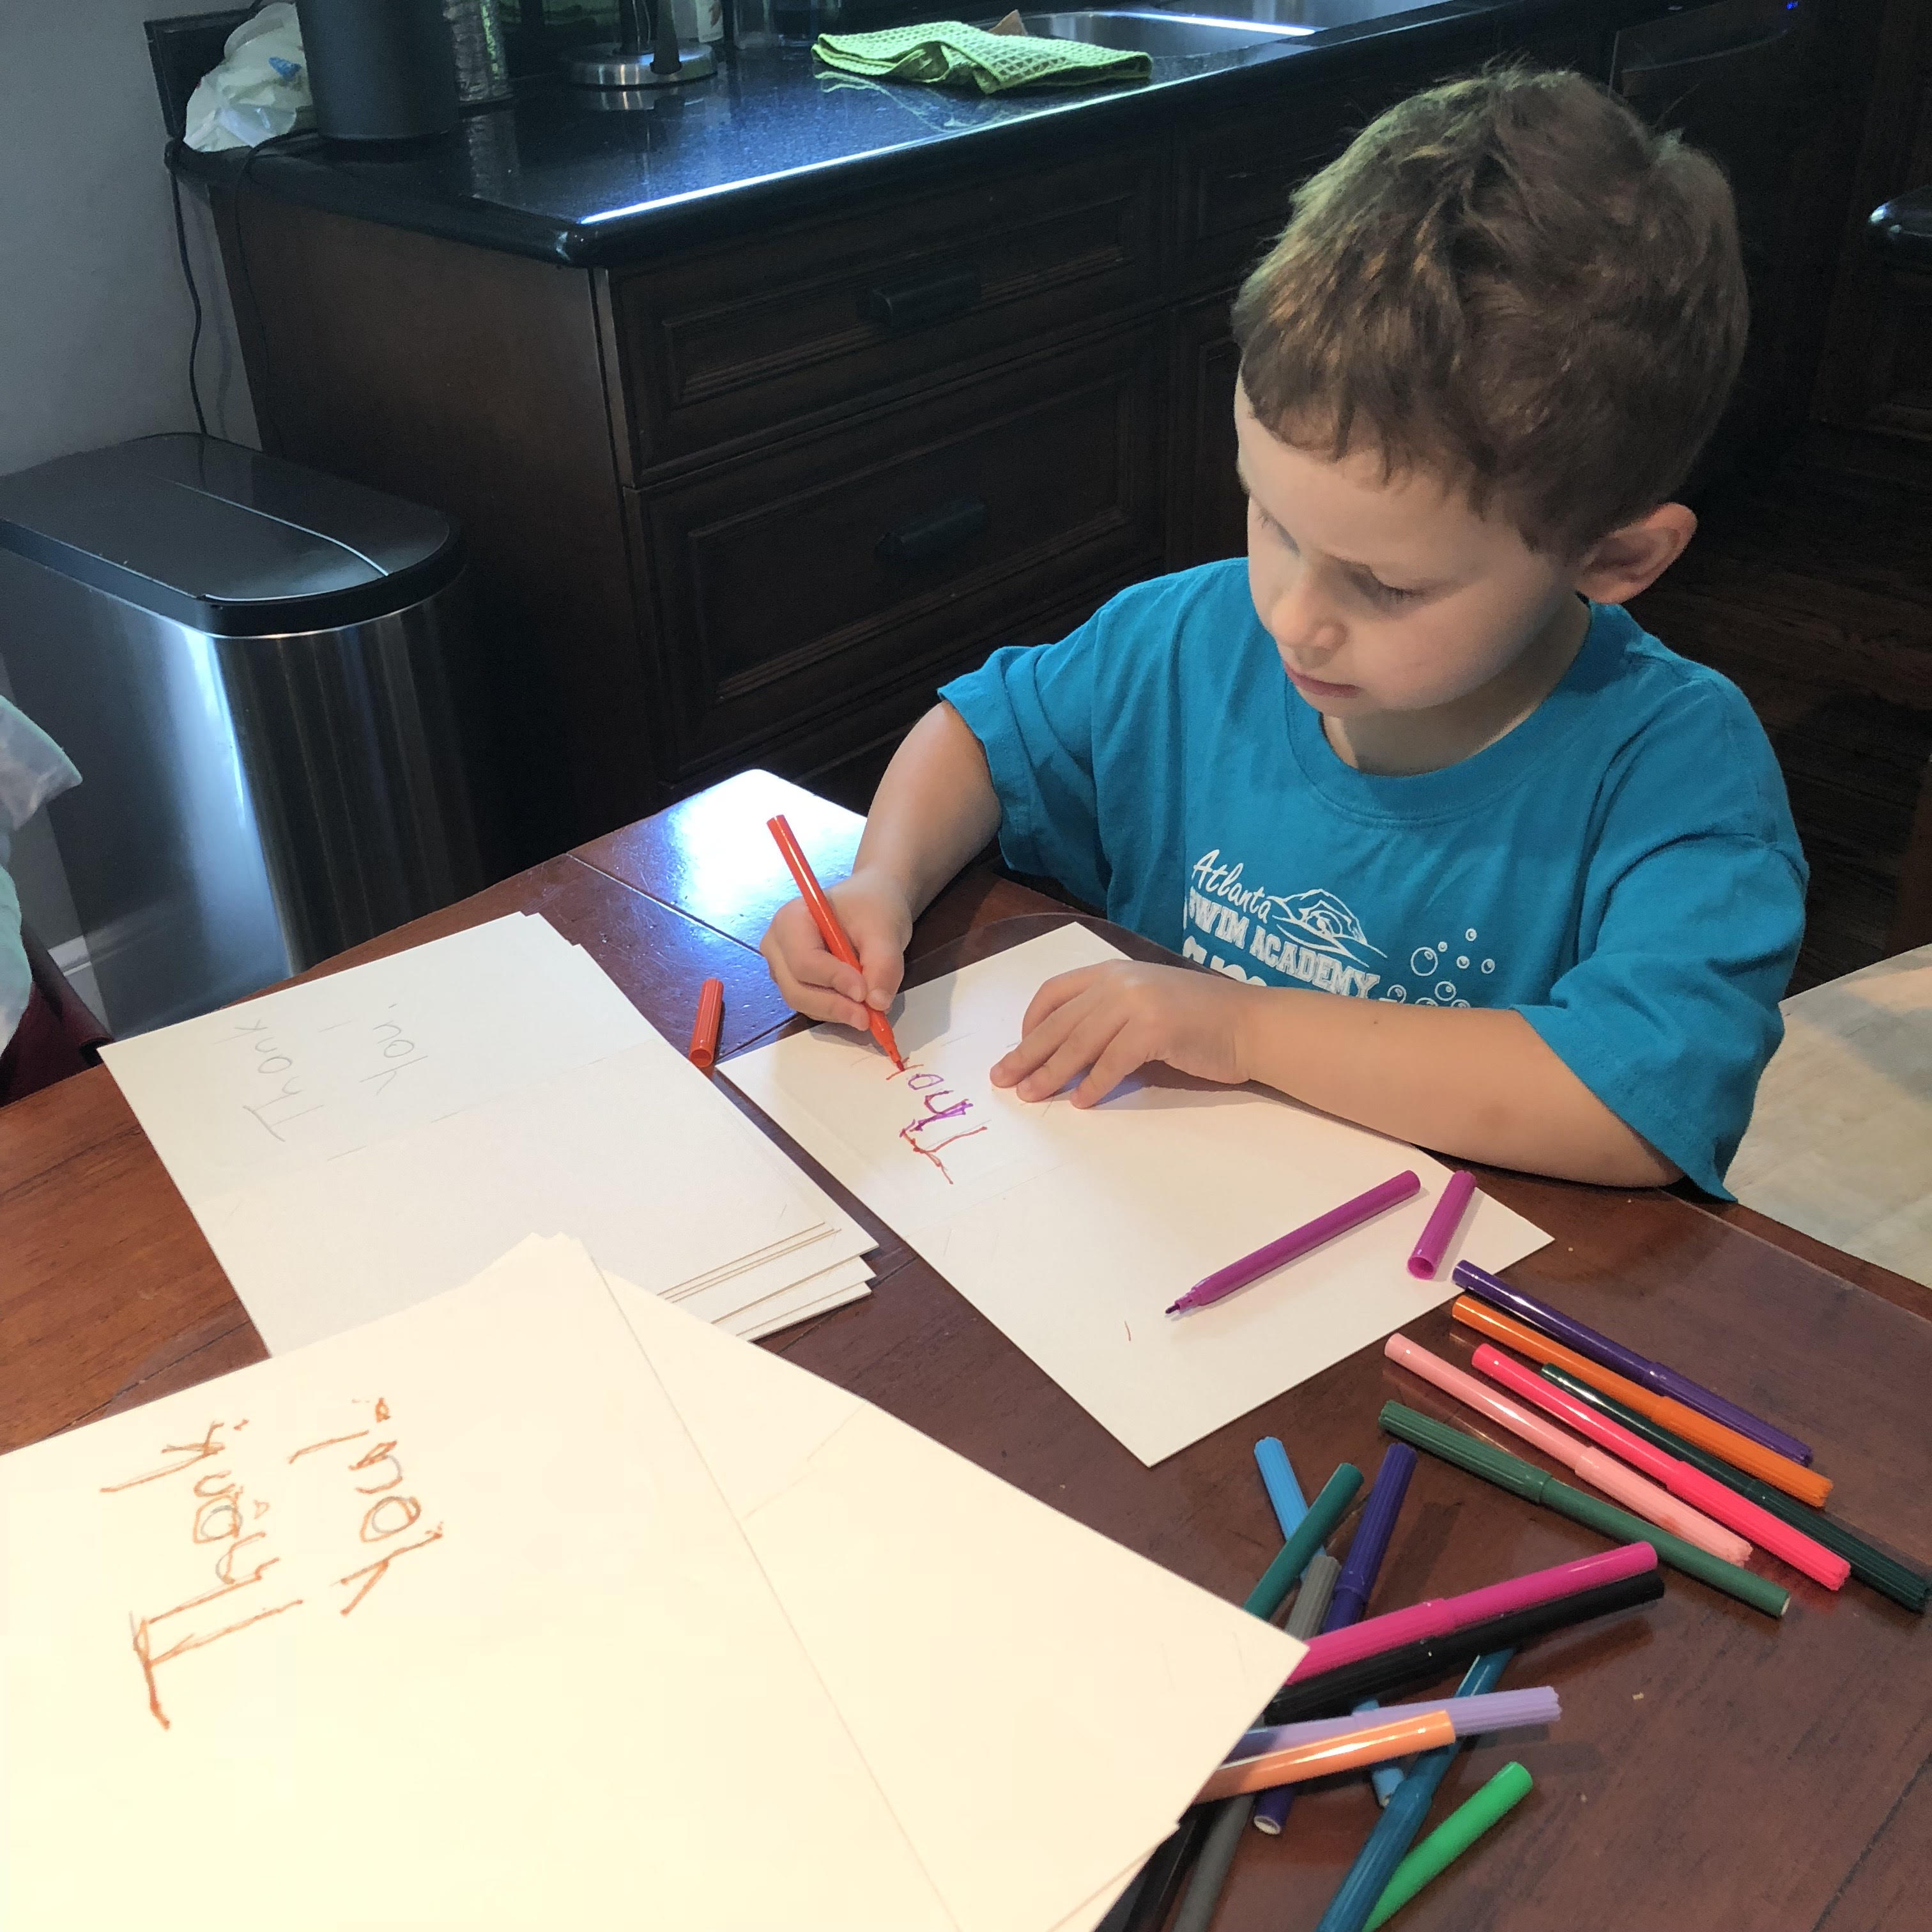 Young Student in a blue shirt writes with colored pencils